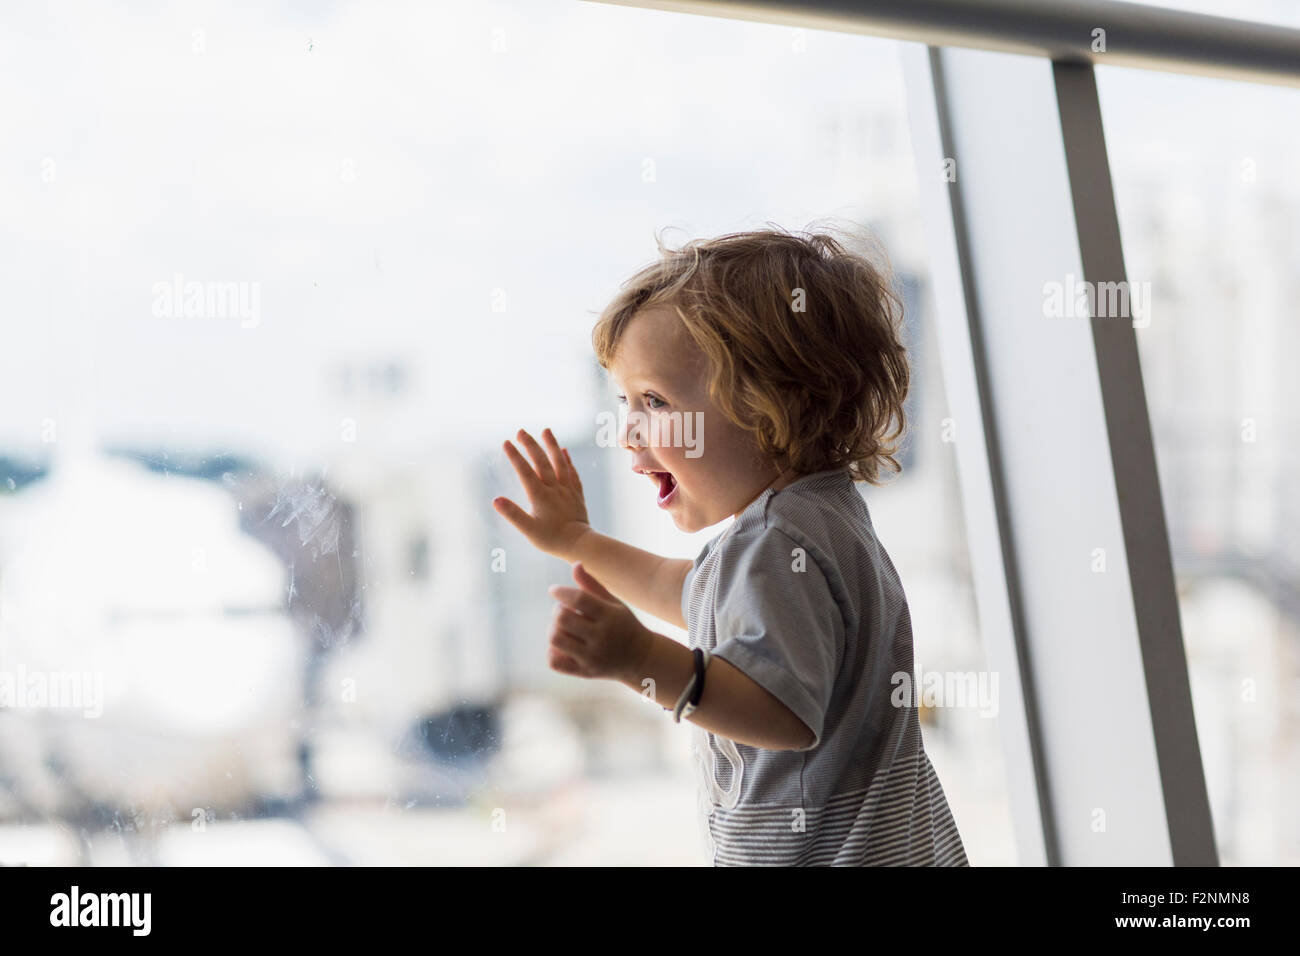 Caucasian baby boy looking out airport window Stock Photo